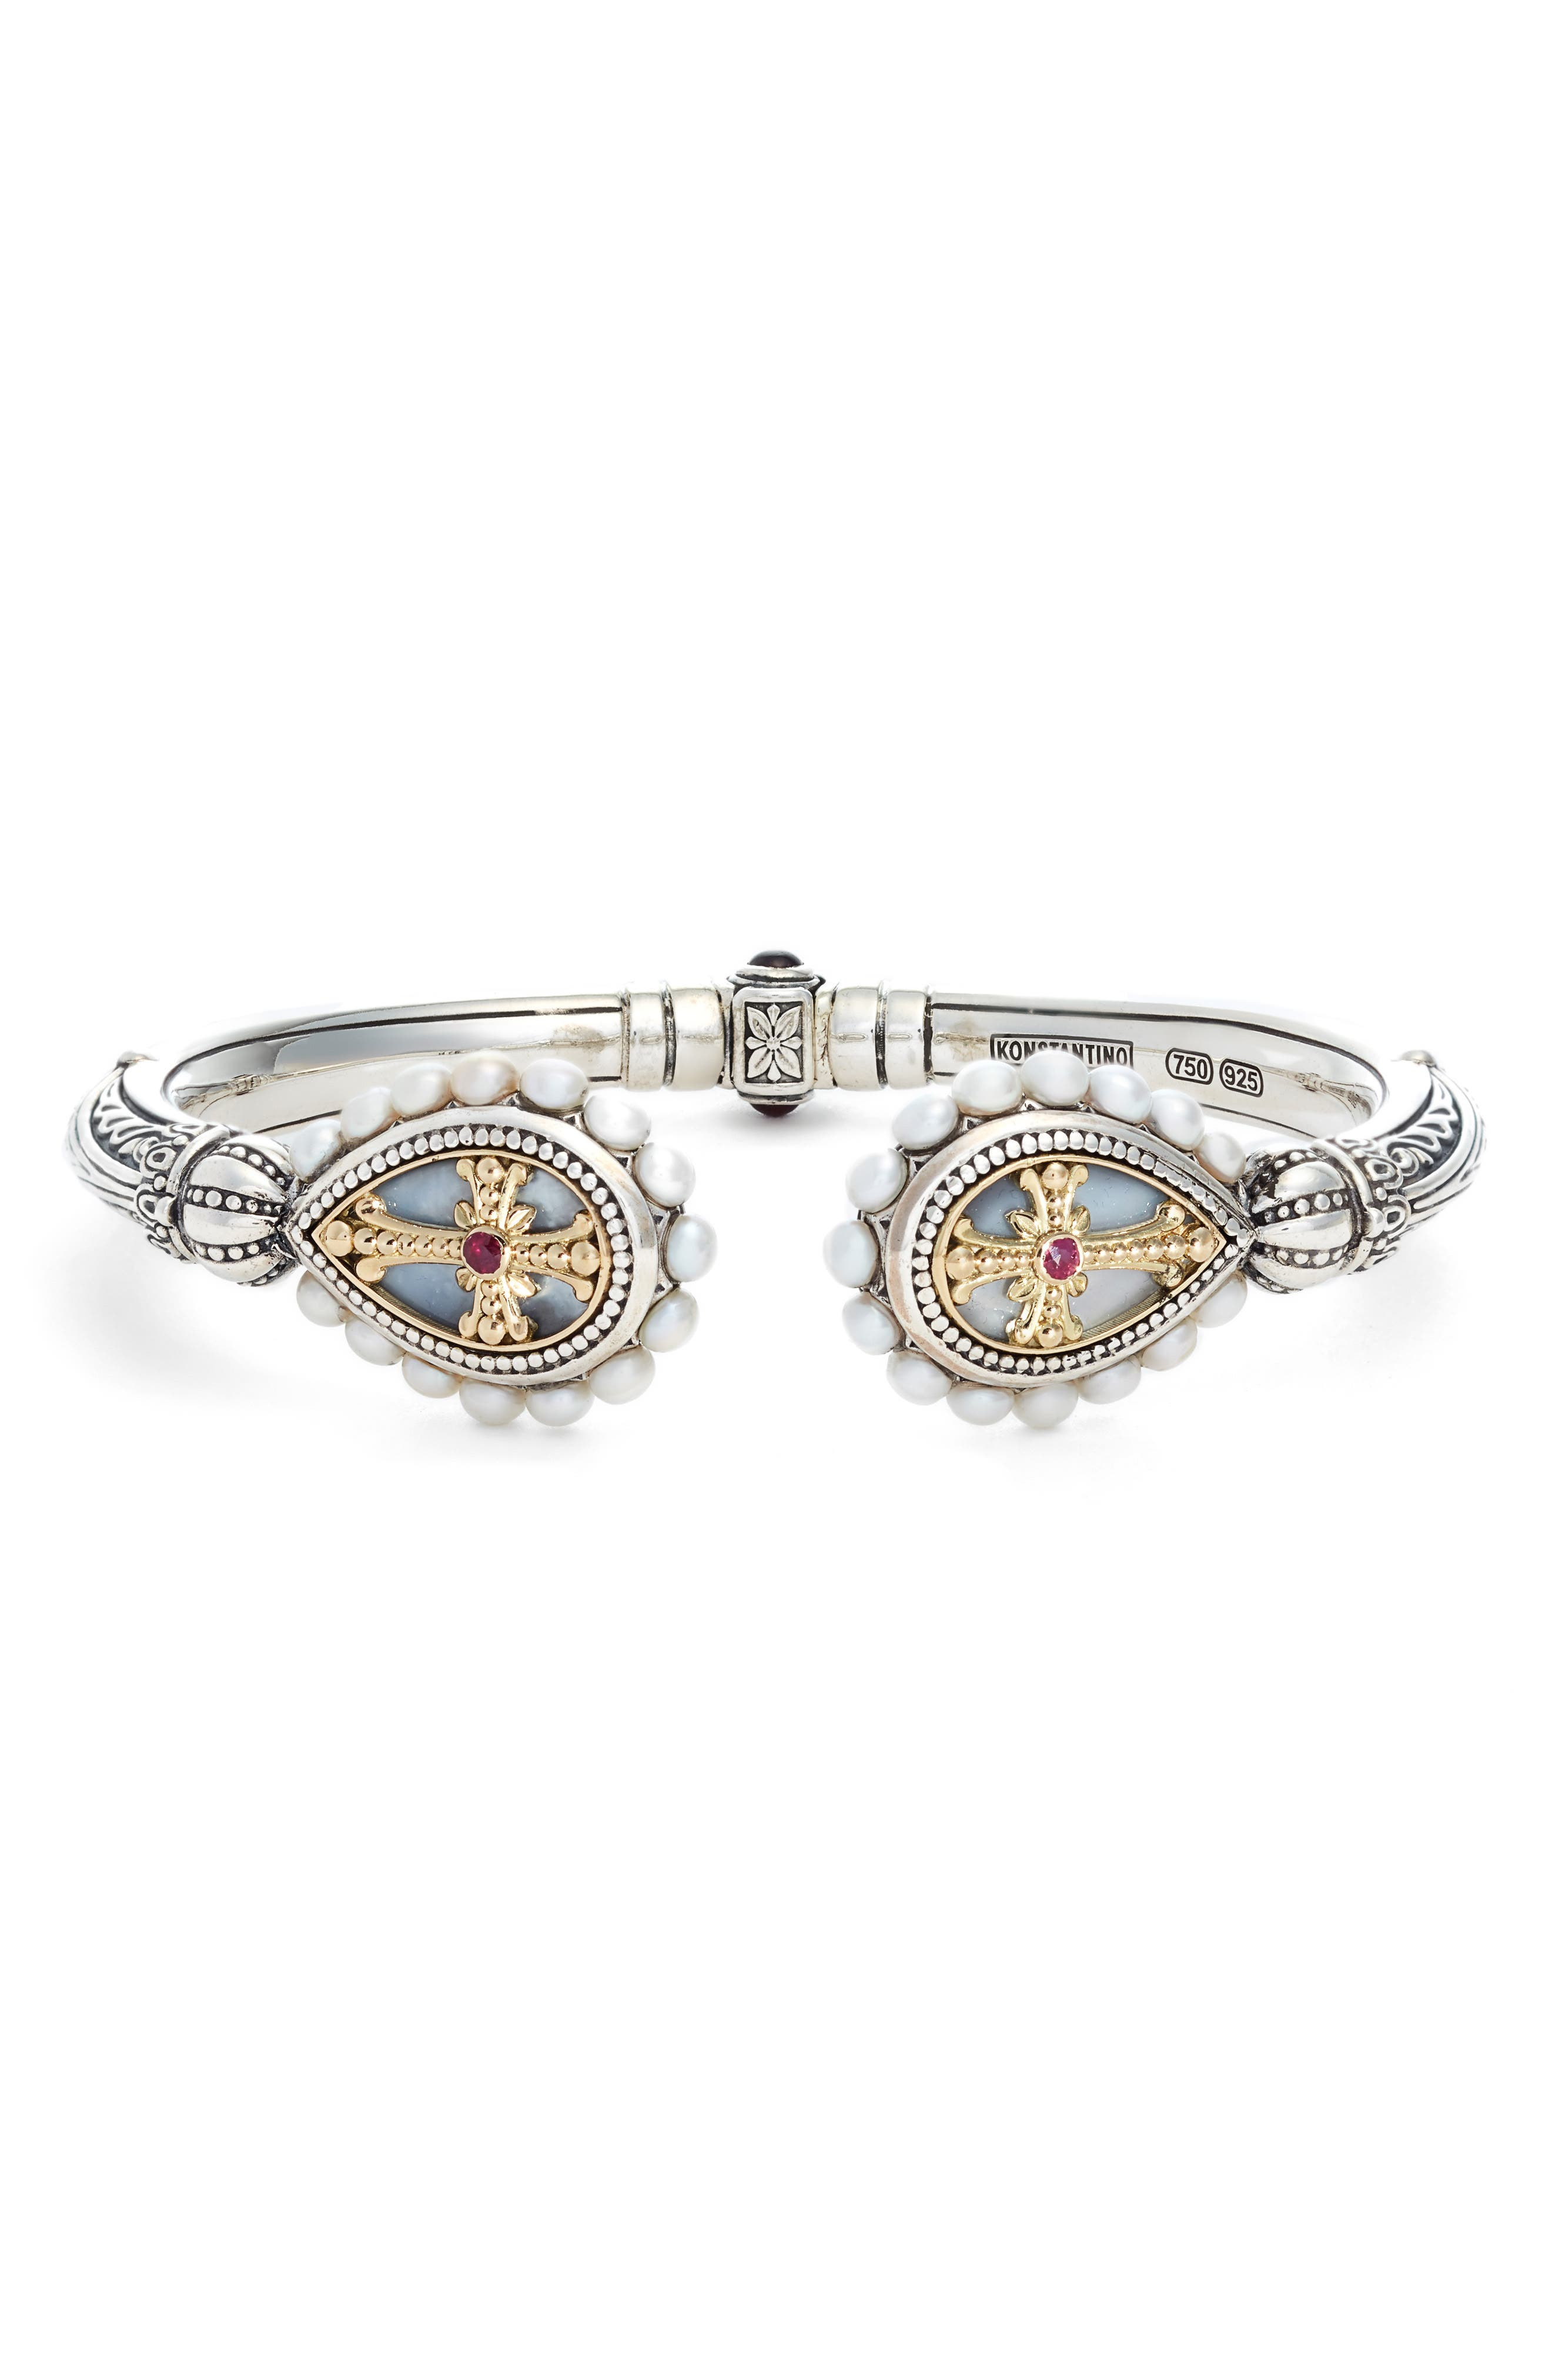 Etched Sterling Pearl & Ruby Hinged Bracelet,                             Main thumbnail 1, color,                             SILVER/ GOLD/ WHITE